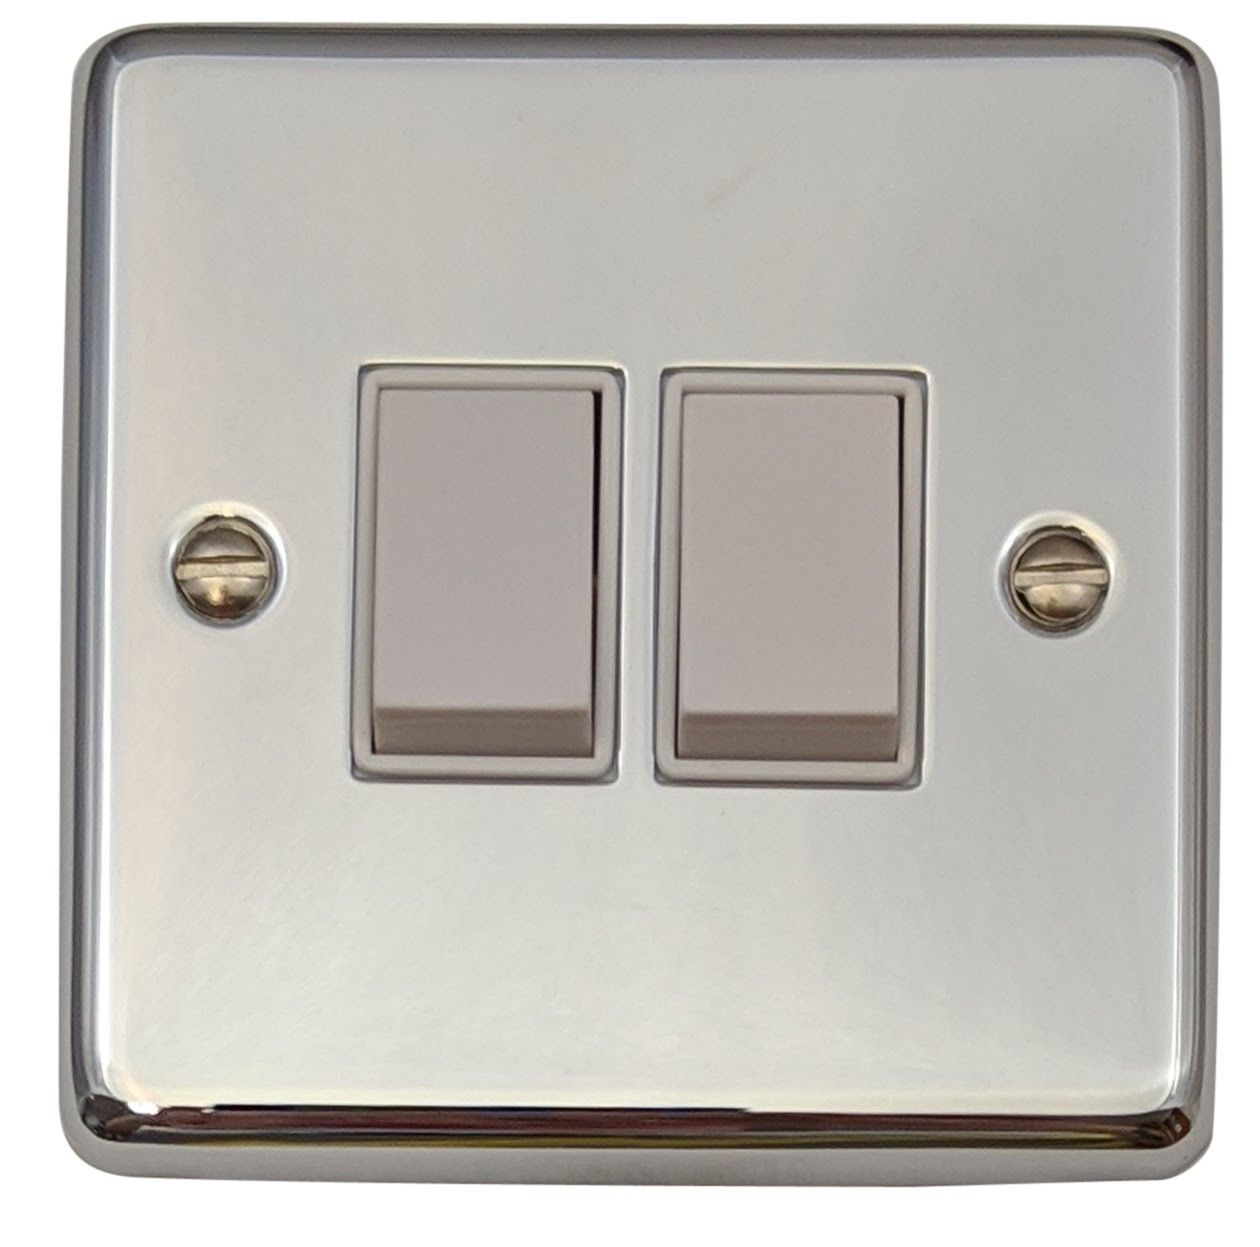 G&H CC2W Standard Plate Polished Chrome 2 Gang 1 or 2 Way Rocker Light Switch